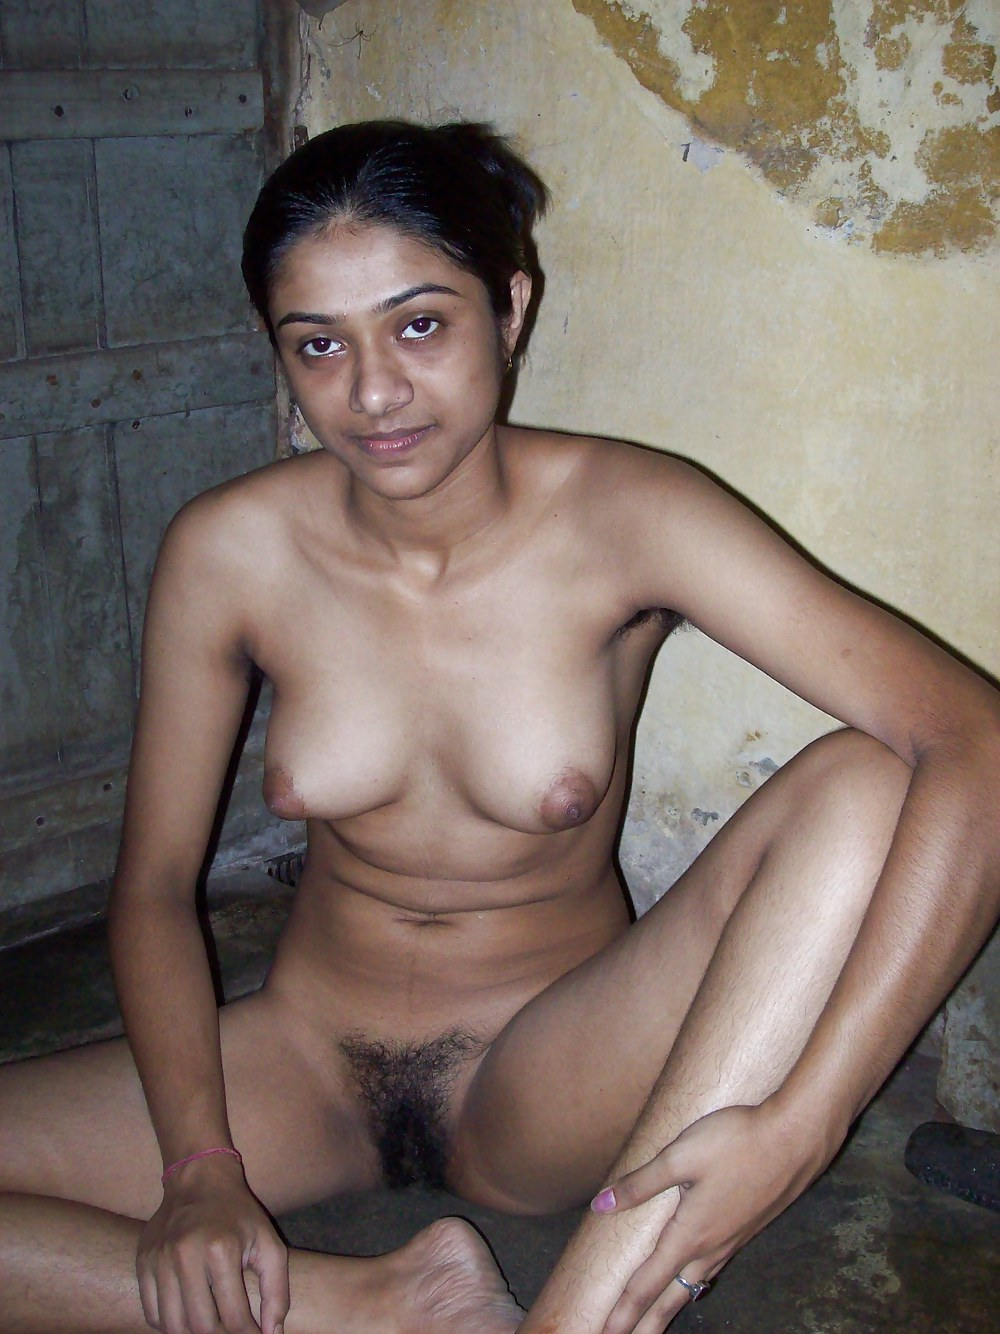 Sexy naked photo in india nude picture